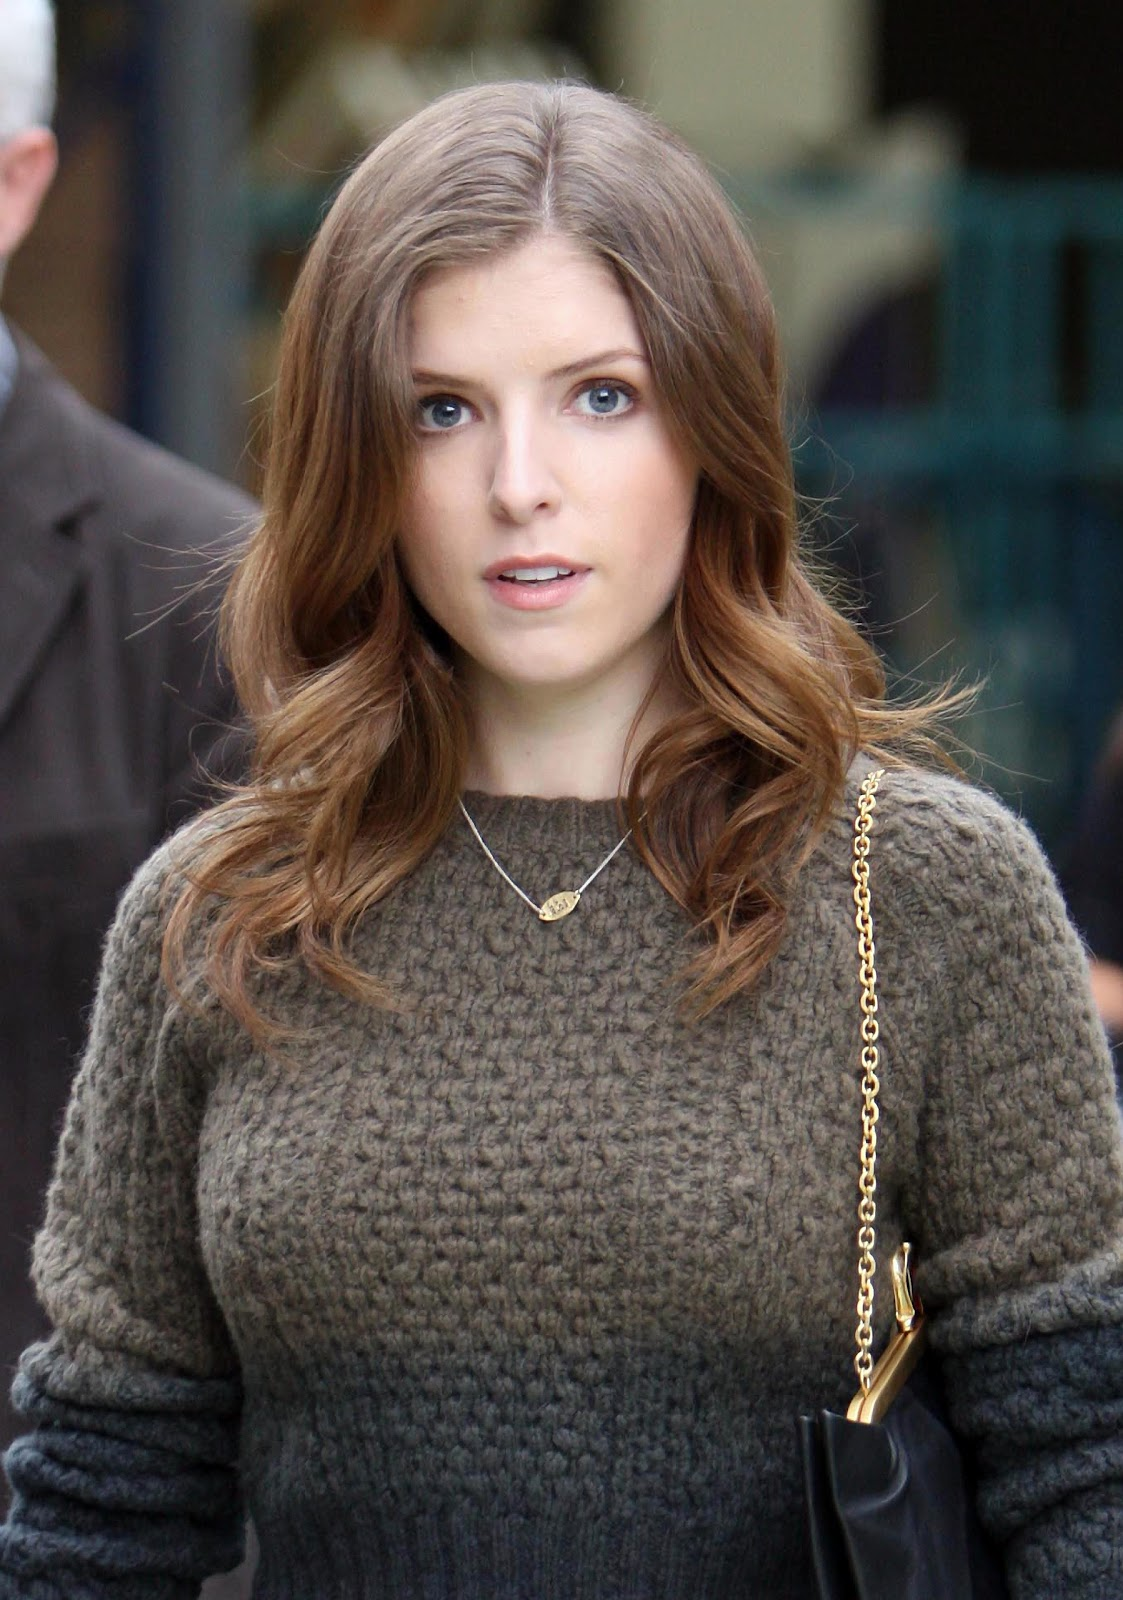 hollywood modeling girls stills Anna Kendrick pics gallery